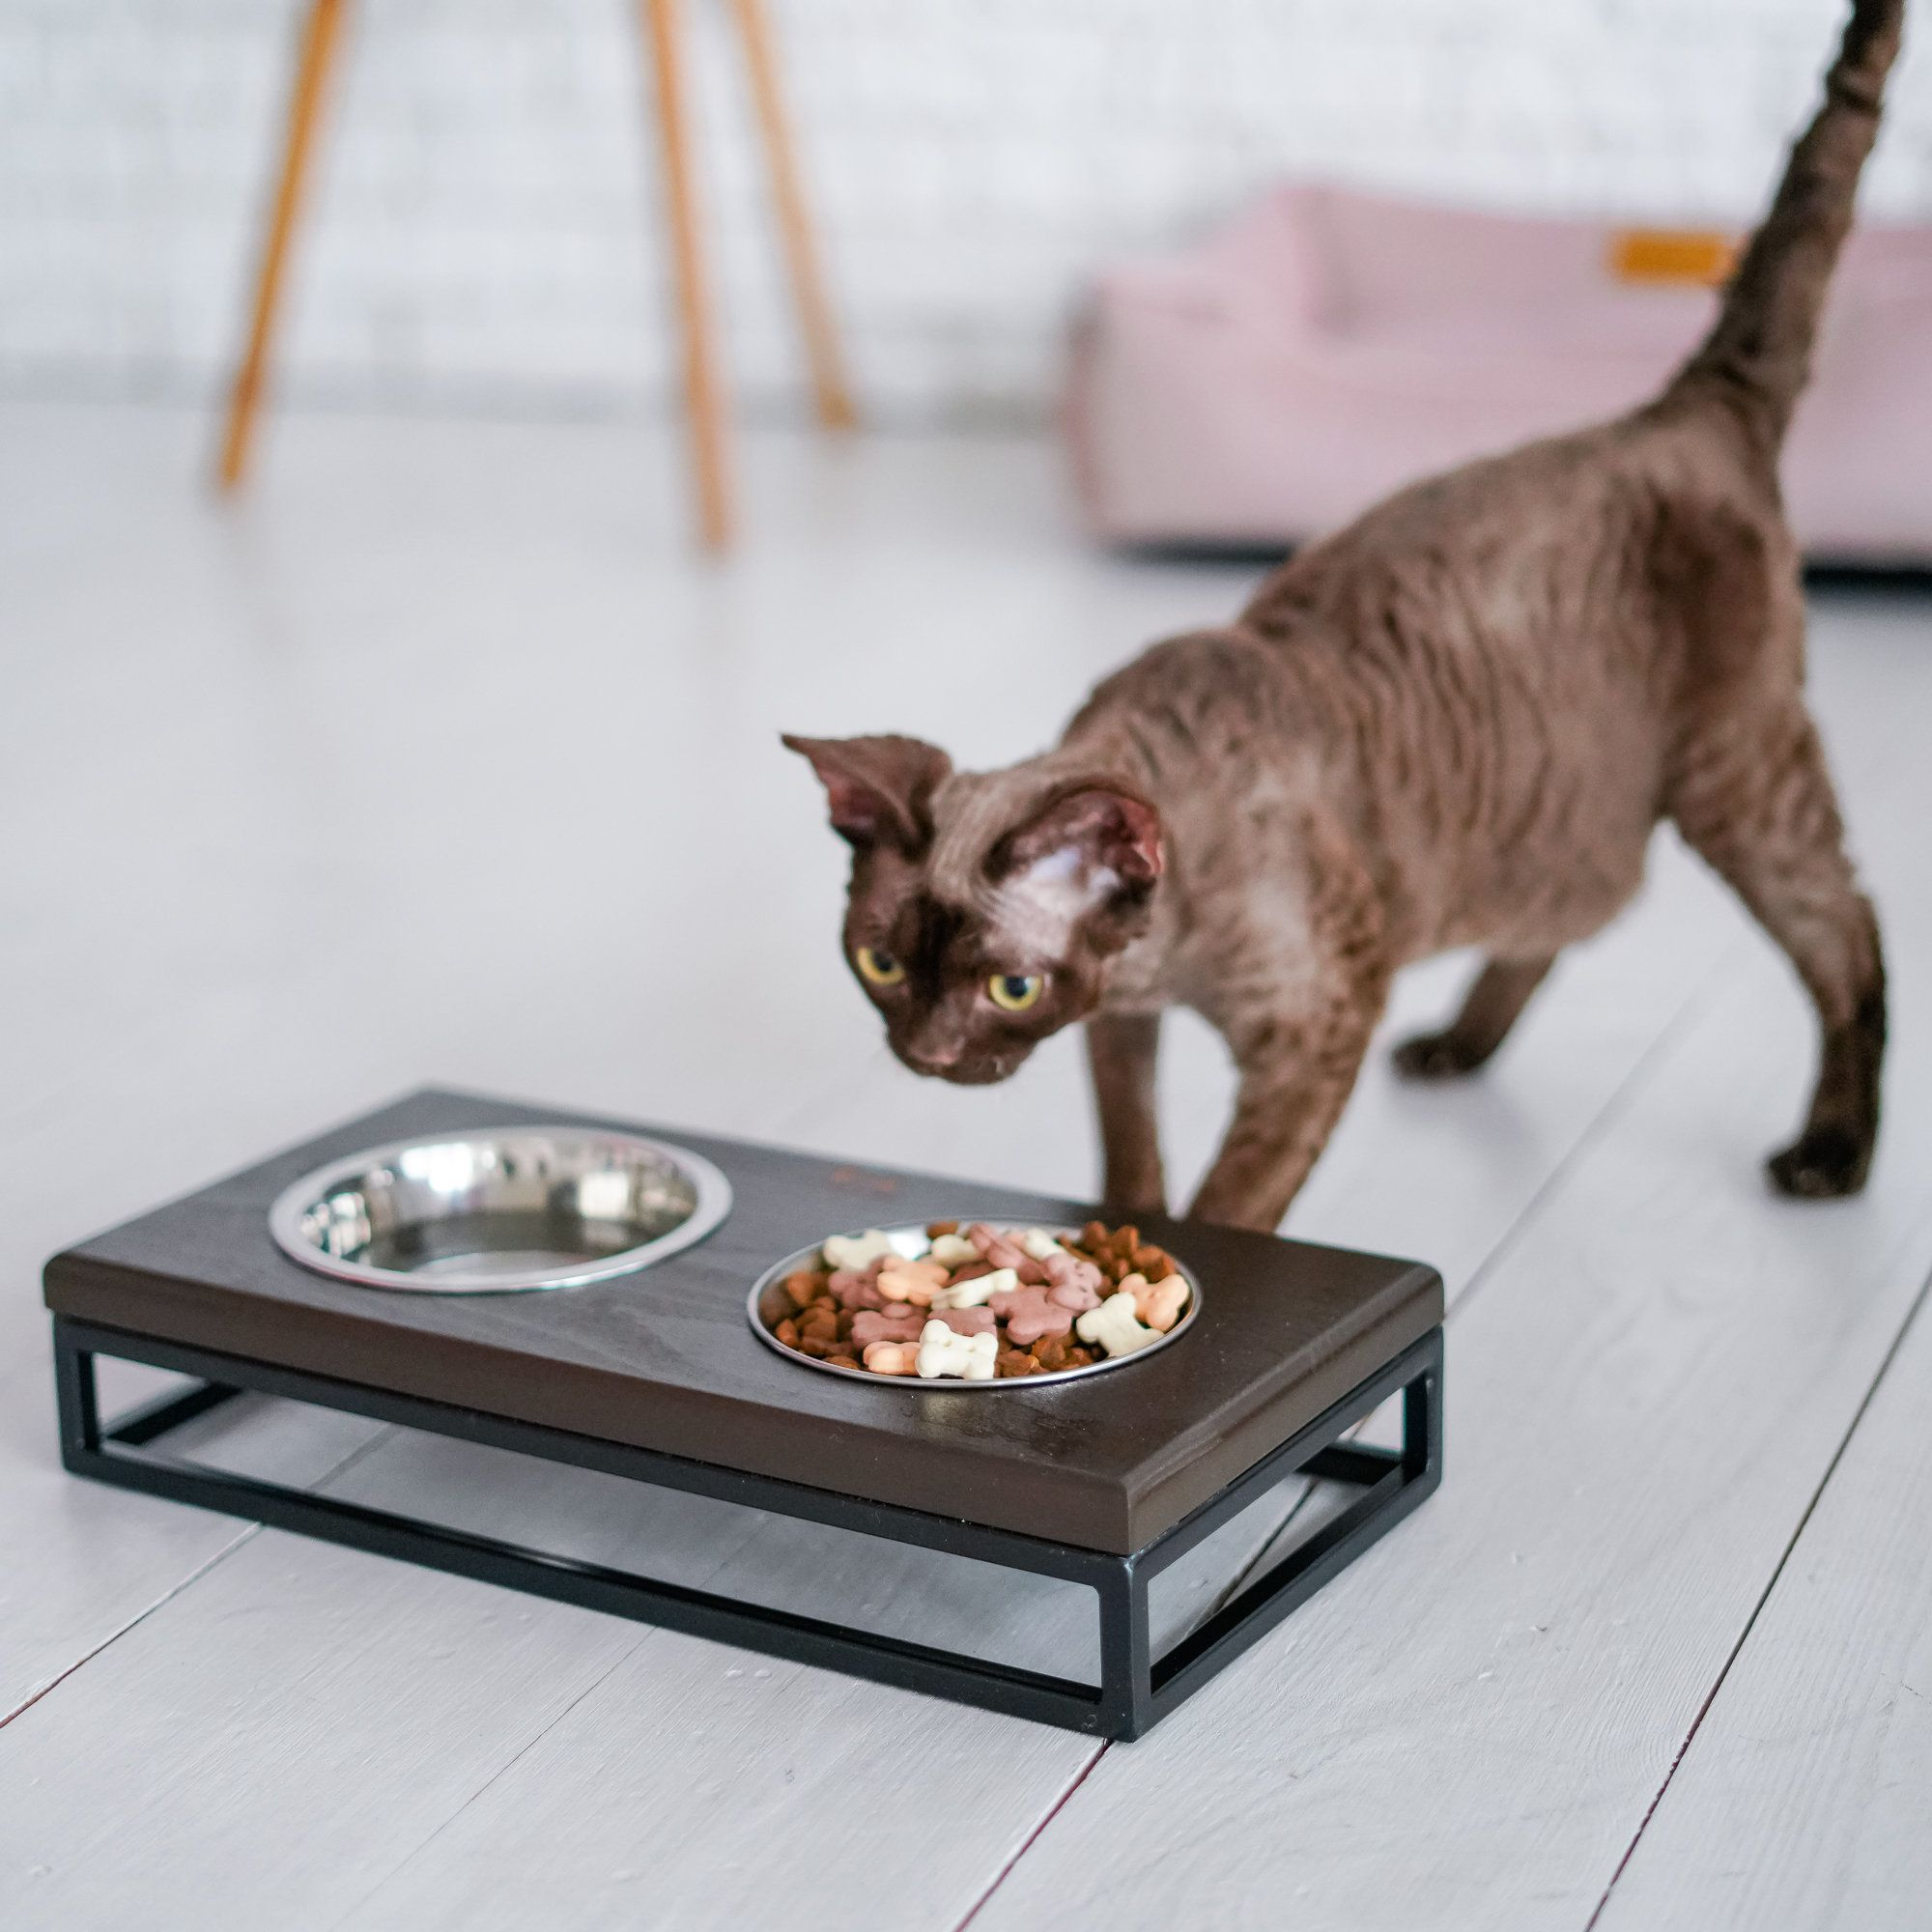 Cat Bowls Stand For Water And Food Wooden Eco Friendly Feeder For Modern Home Stable Black Metal Base And Wooden Top Small Size Cat Bowl Tovary Dlya Zhivotnyh Zhivotnye